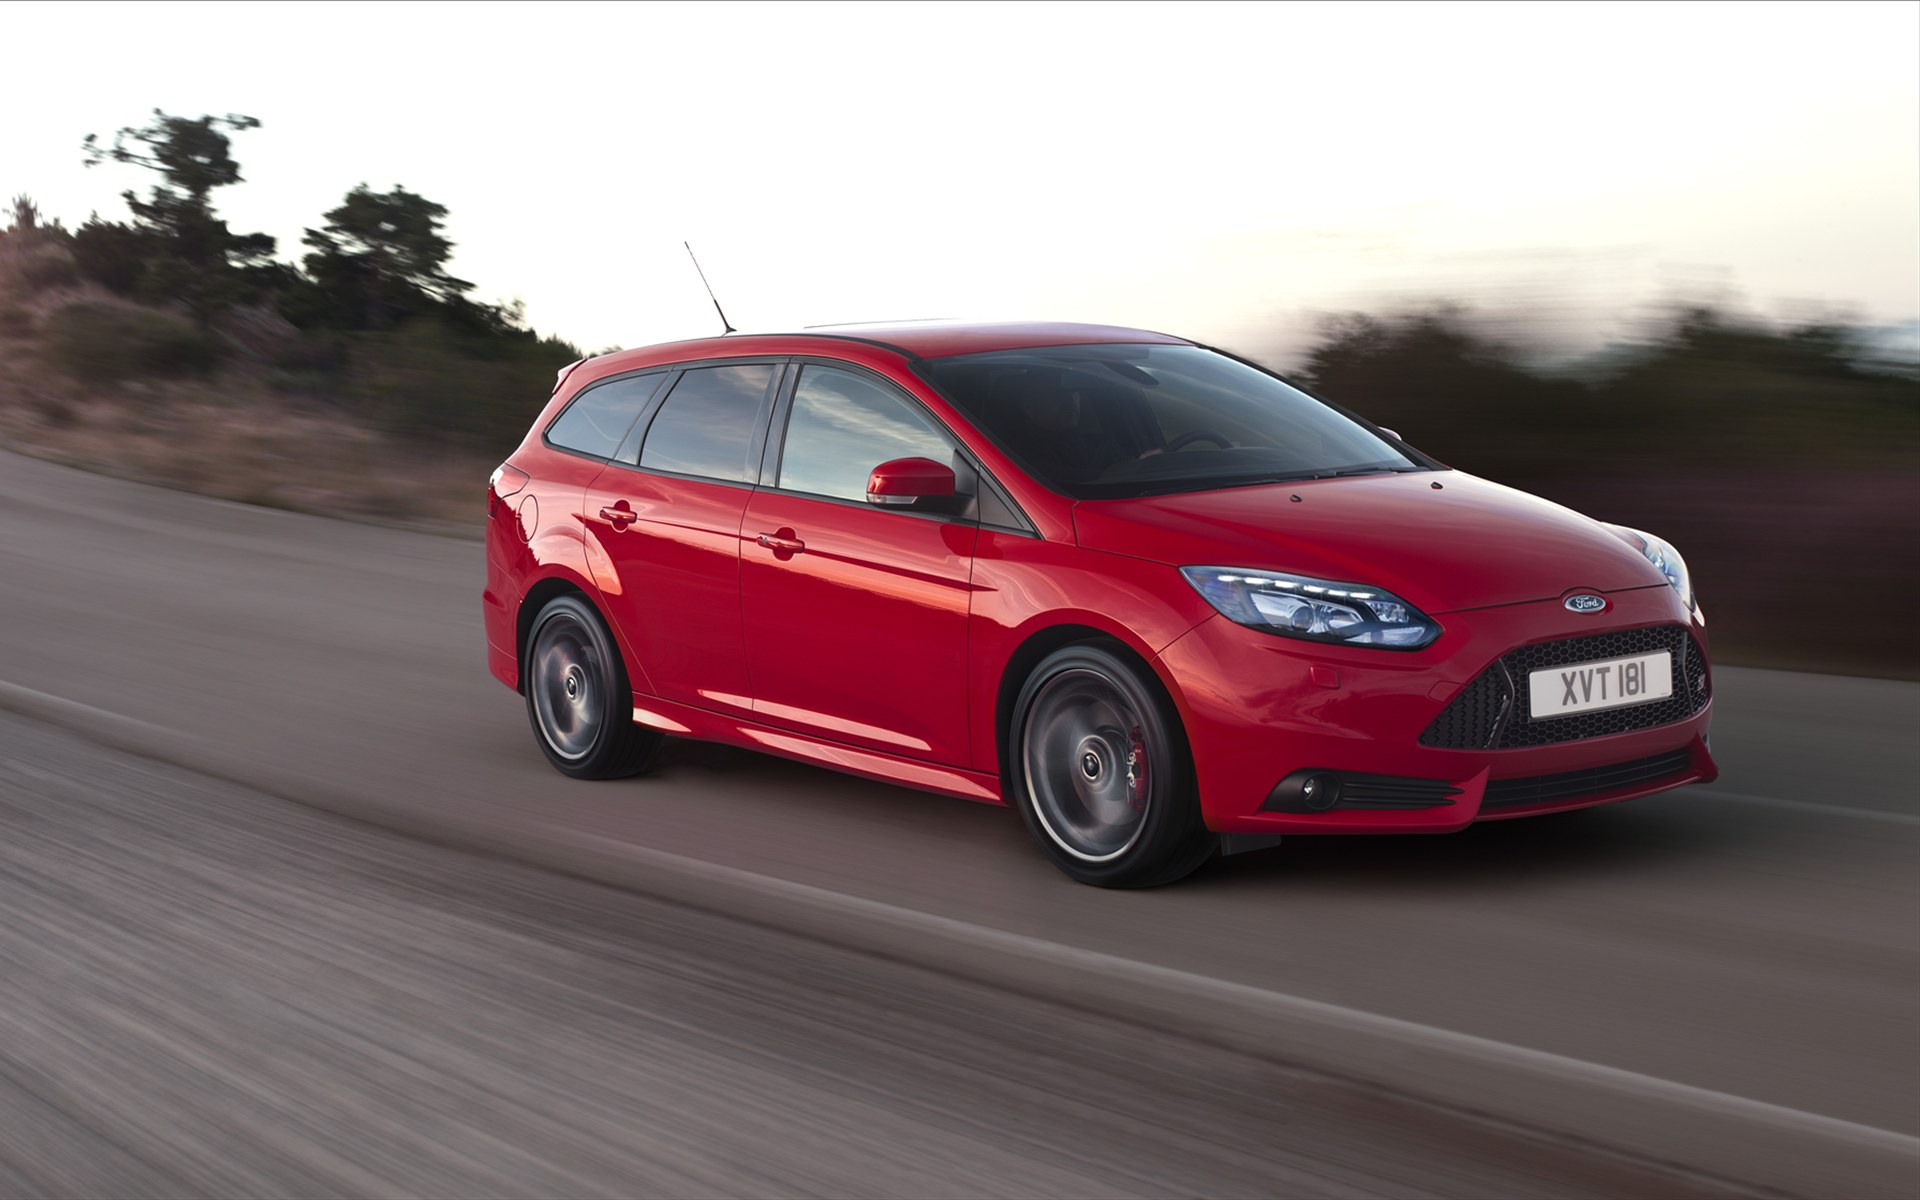 Ford Focus ST 2013 Wallpaper 2 Sense The Car 1920x1200